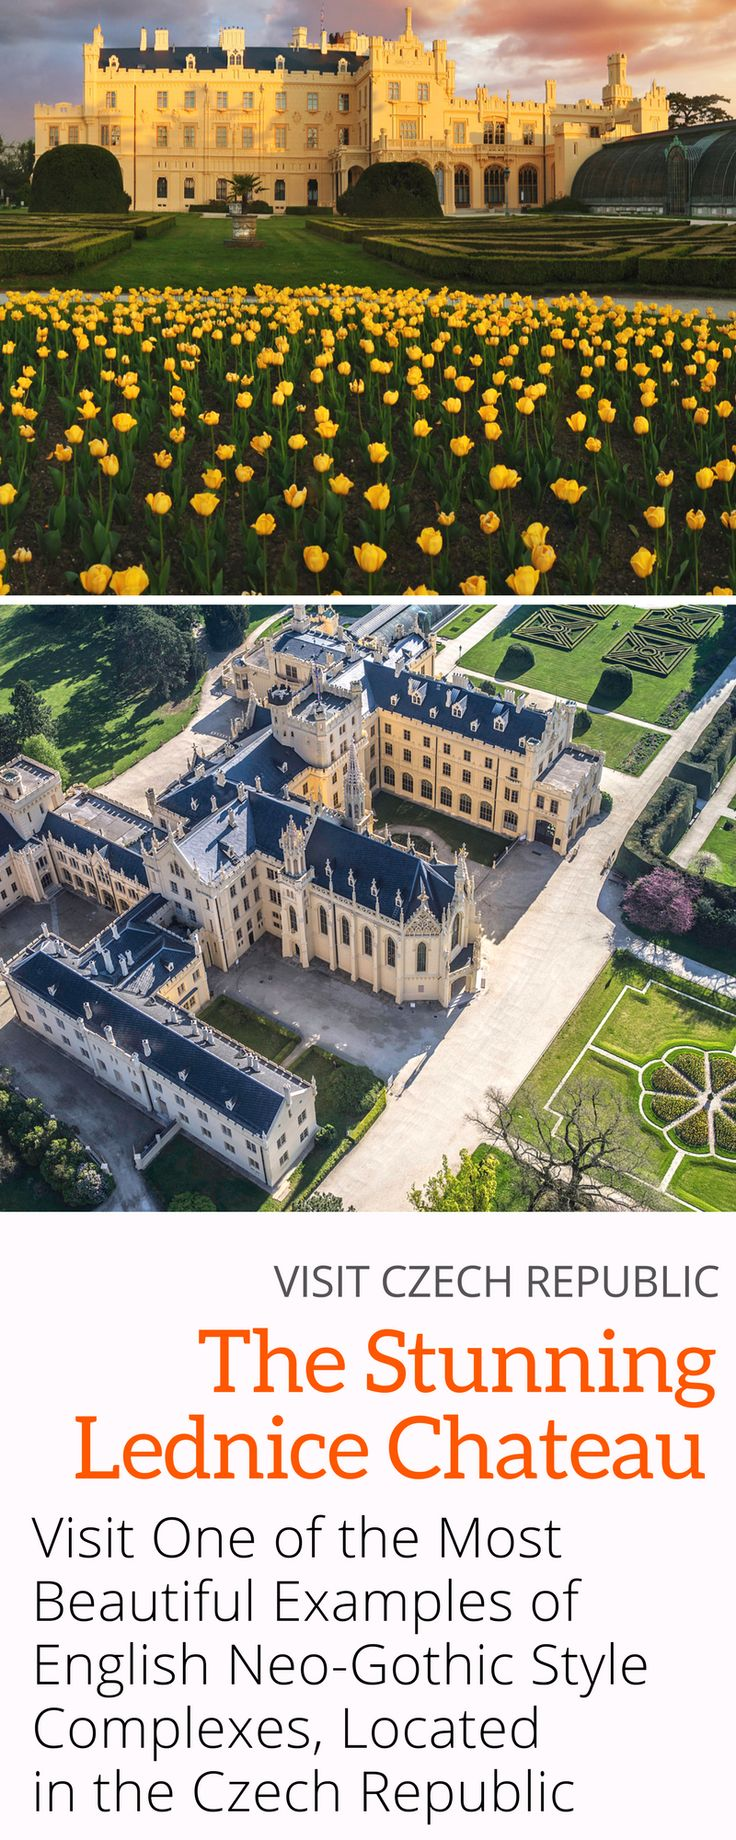 Visit Lednice Chateau and see marvellous representative halls, private rooms of the princely family, children's rooms and a haunted cave! Only a few hours from Prague in the Czech Republic!